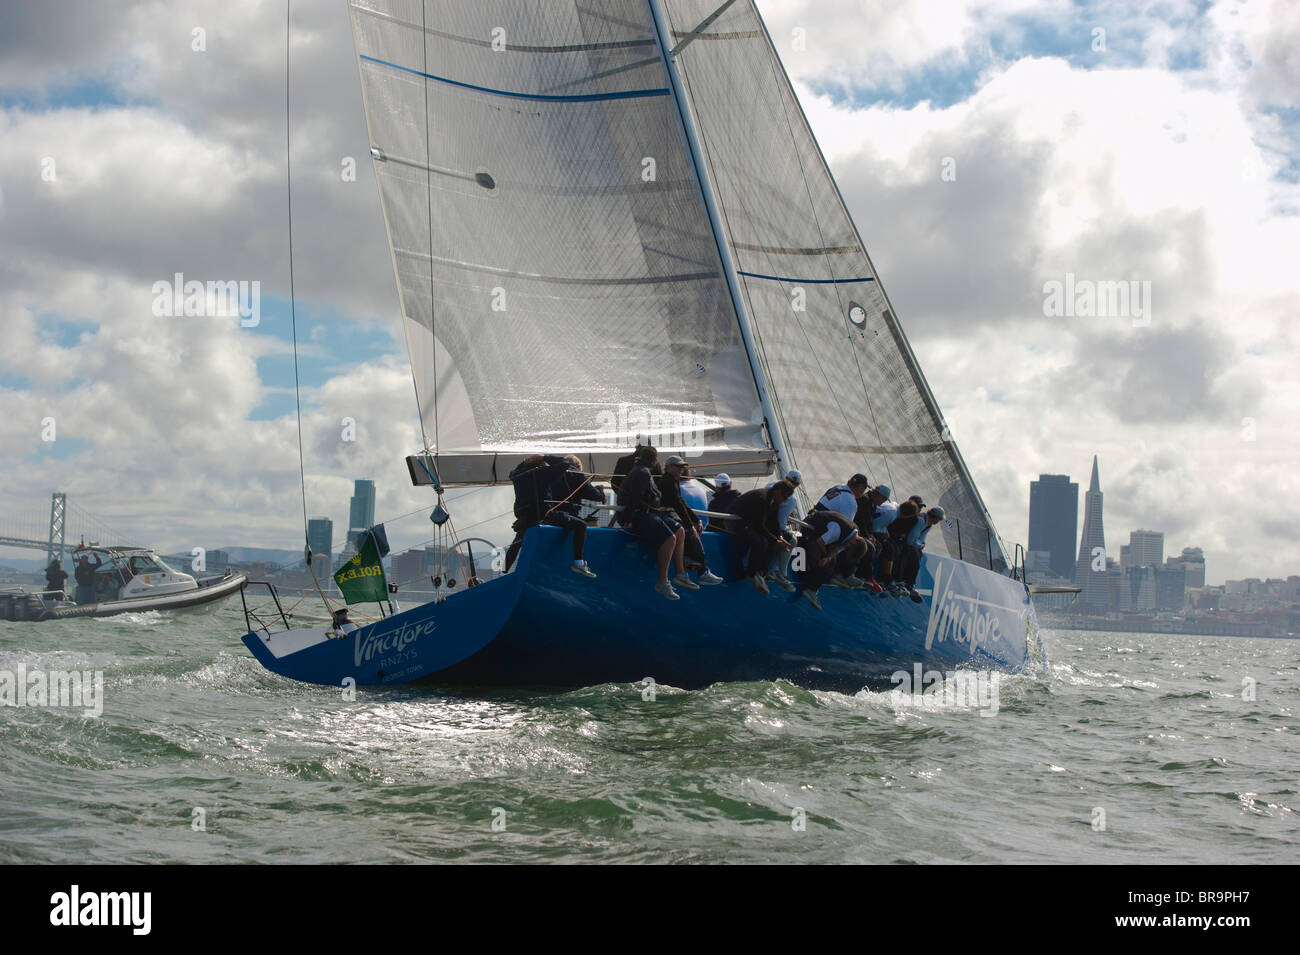 vincitore, a pt 52, winner of rolex irc a division in the big boat race Stock Photo